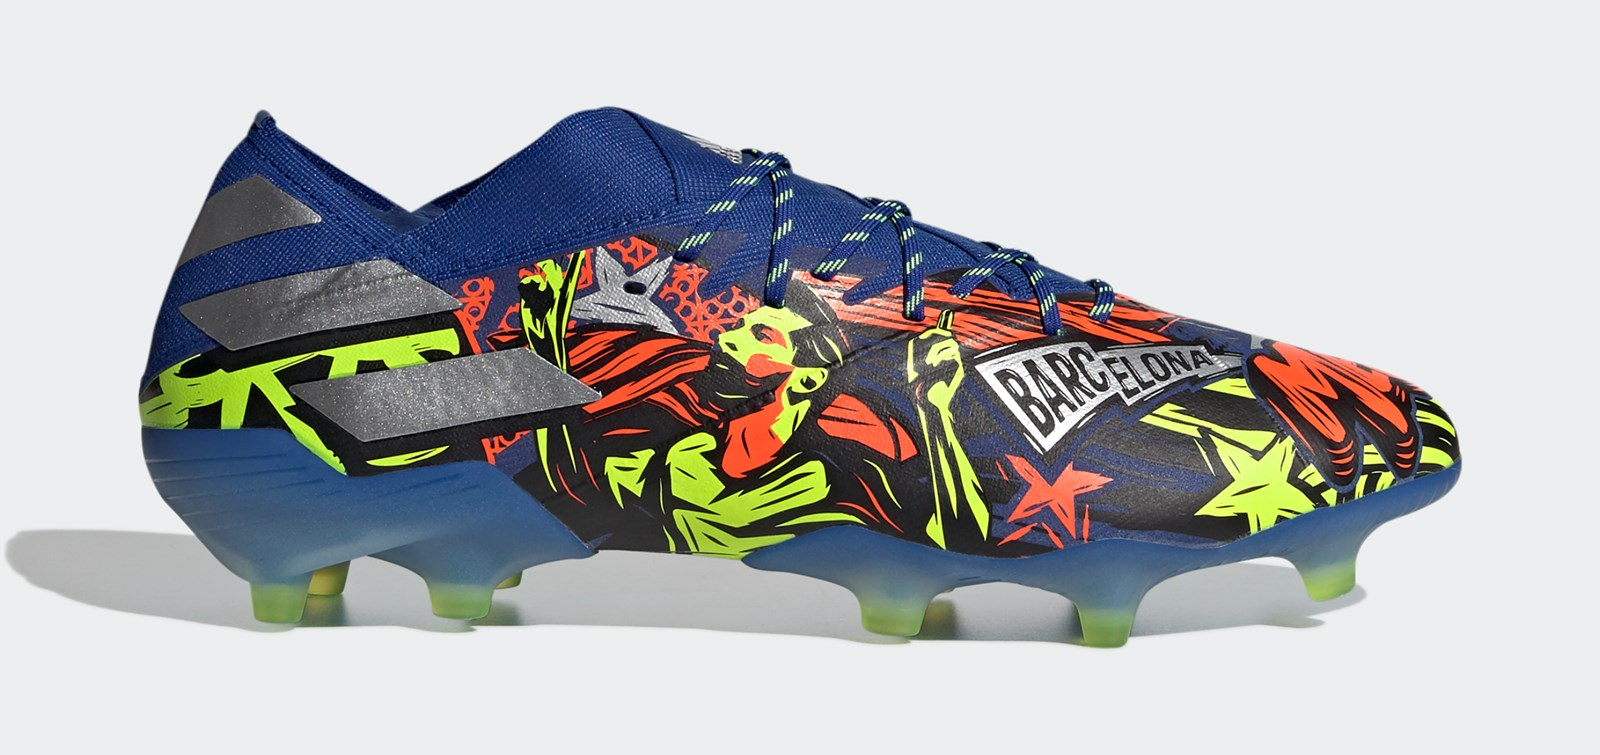 Messi shows off brand new Adidas boots in 2020/21 season: price ...